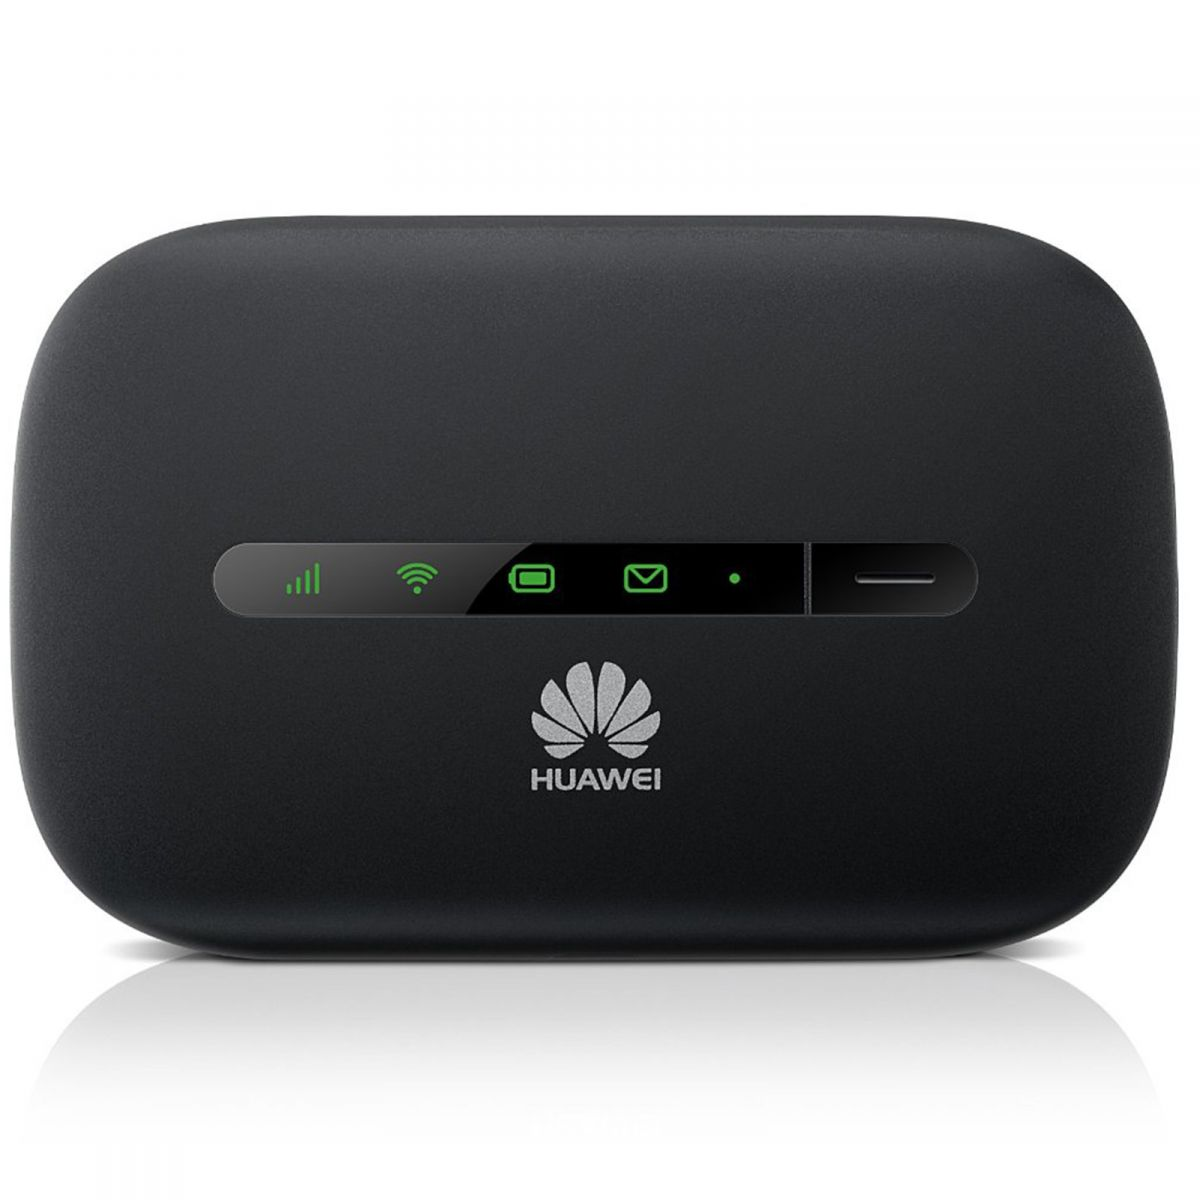 modem router wireless 3g umts hspda internet link. Black Bedroom Furniture Sets. Home Design Ideas